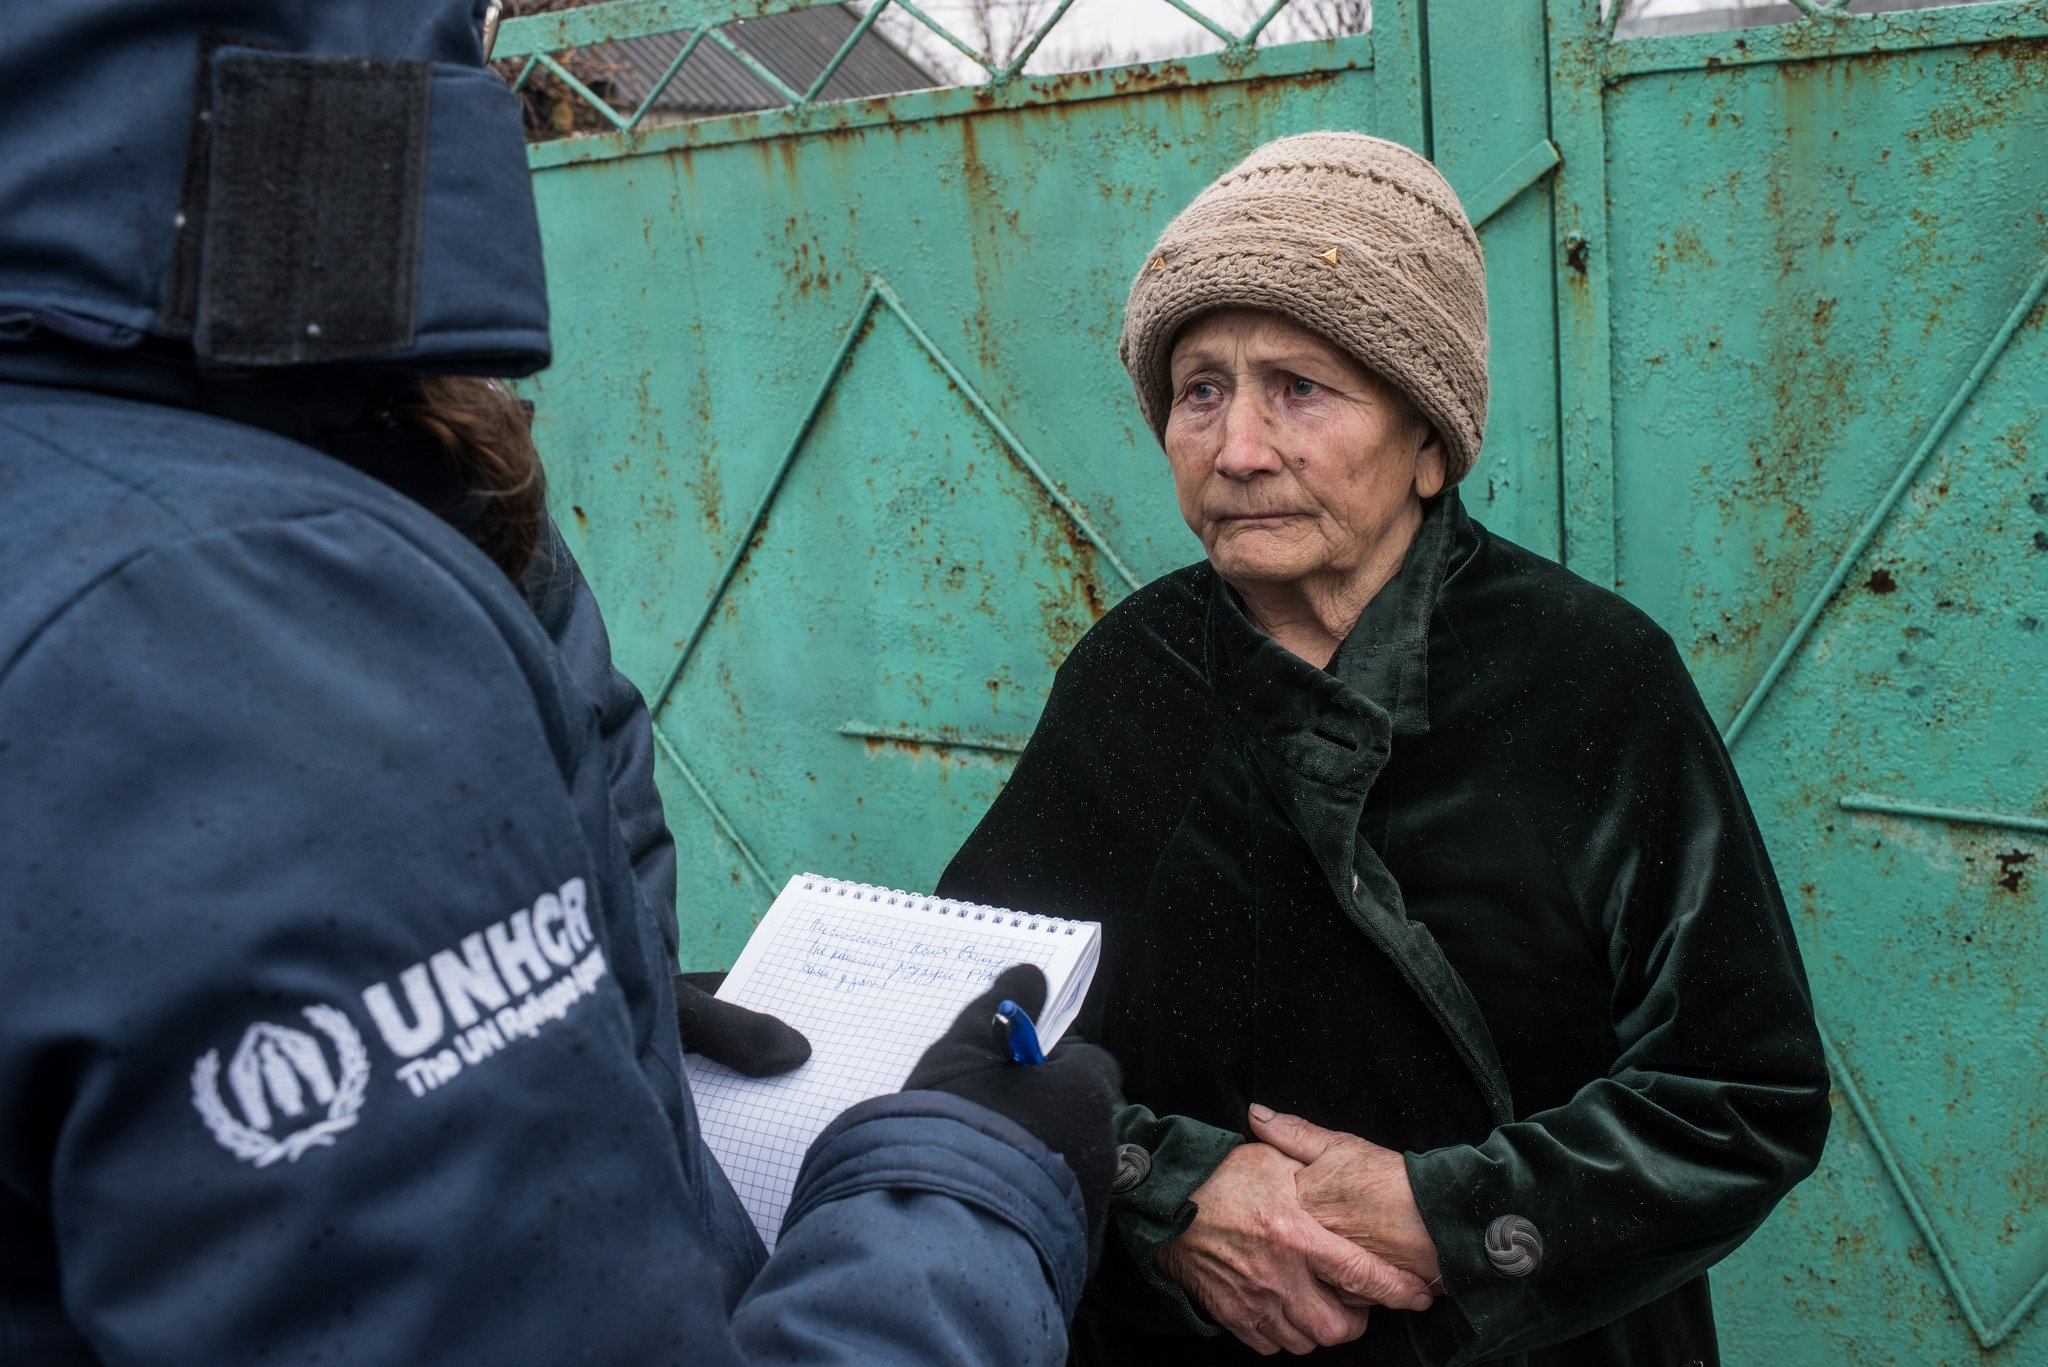 A woman speaks with UNHCR at the frontline village of Luhanske on 12 January 2017.